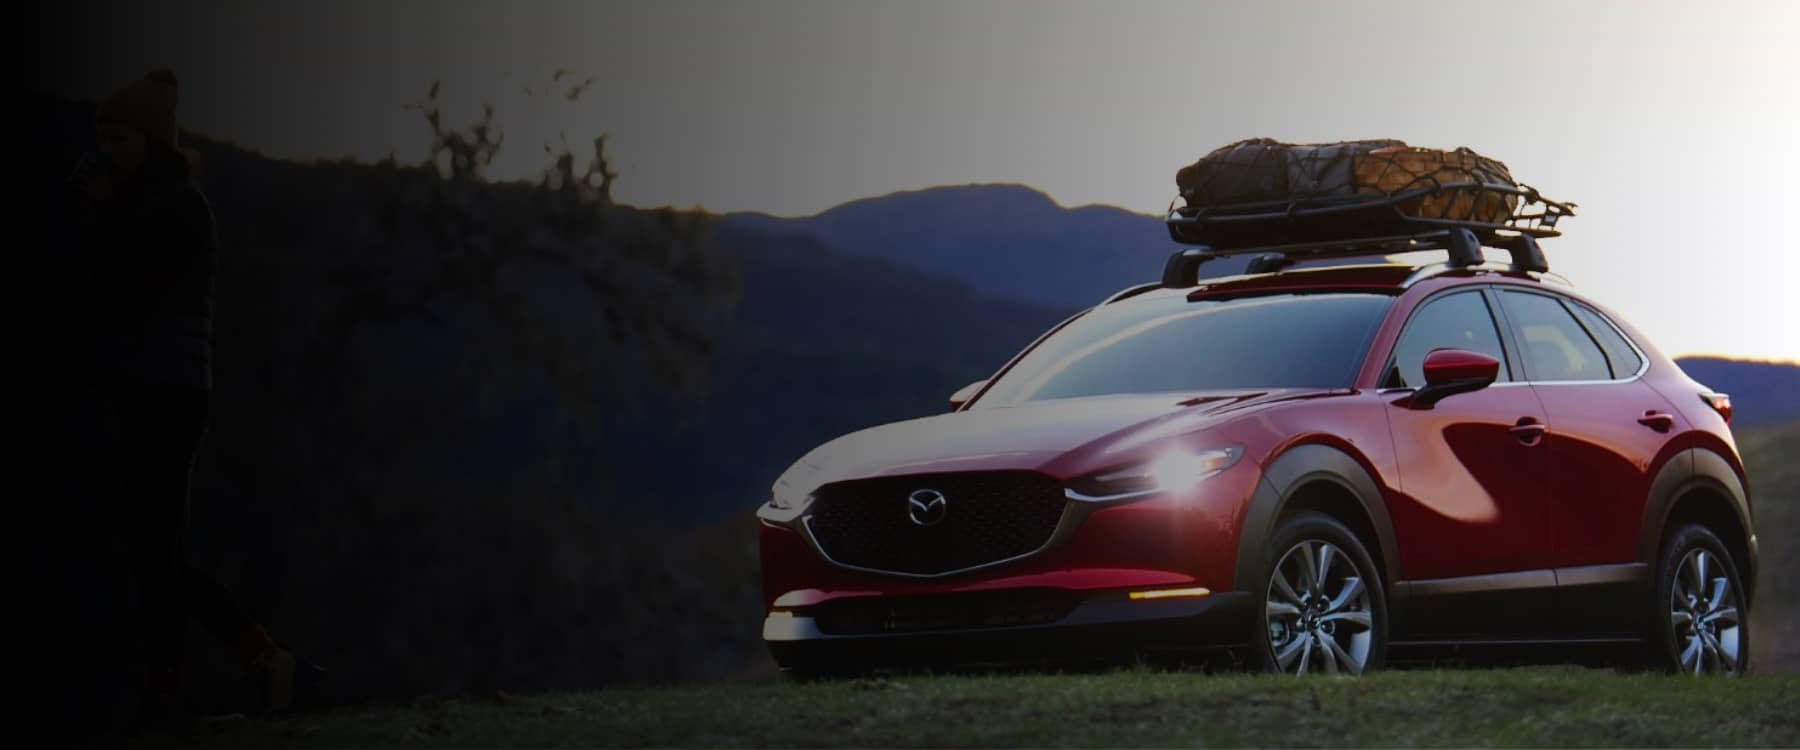 A red Mazda SUV with a cargo carrier against a mountainous backdrop.